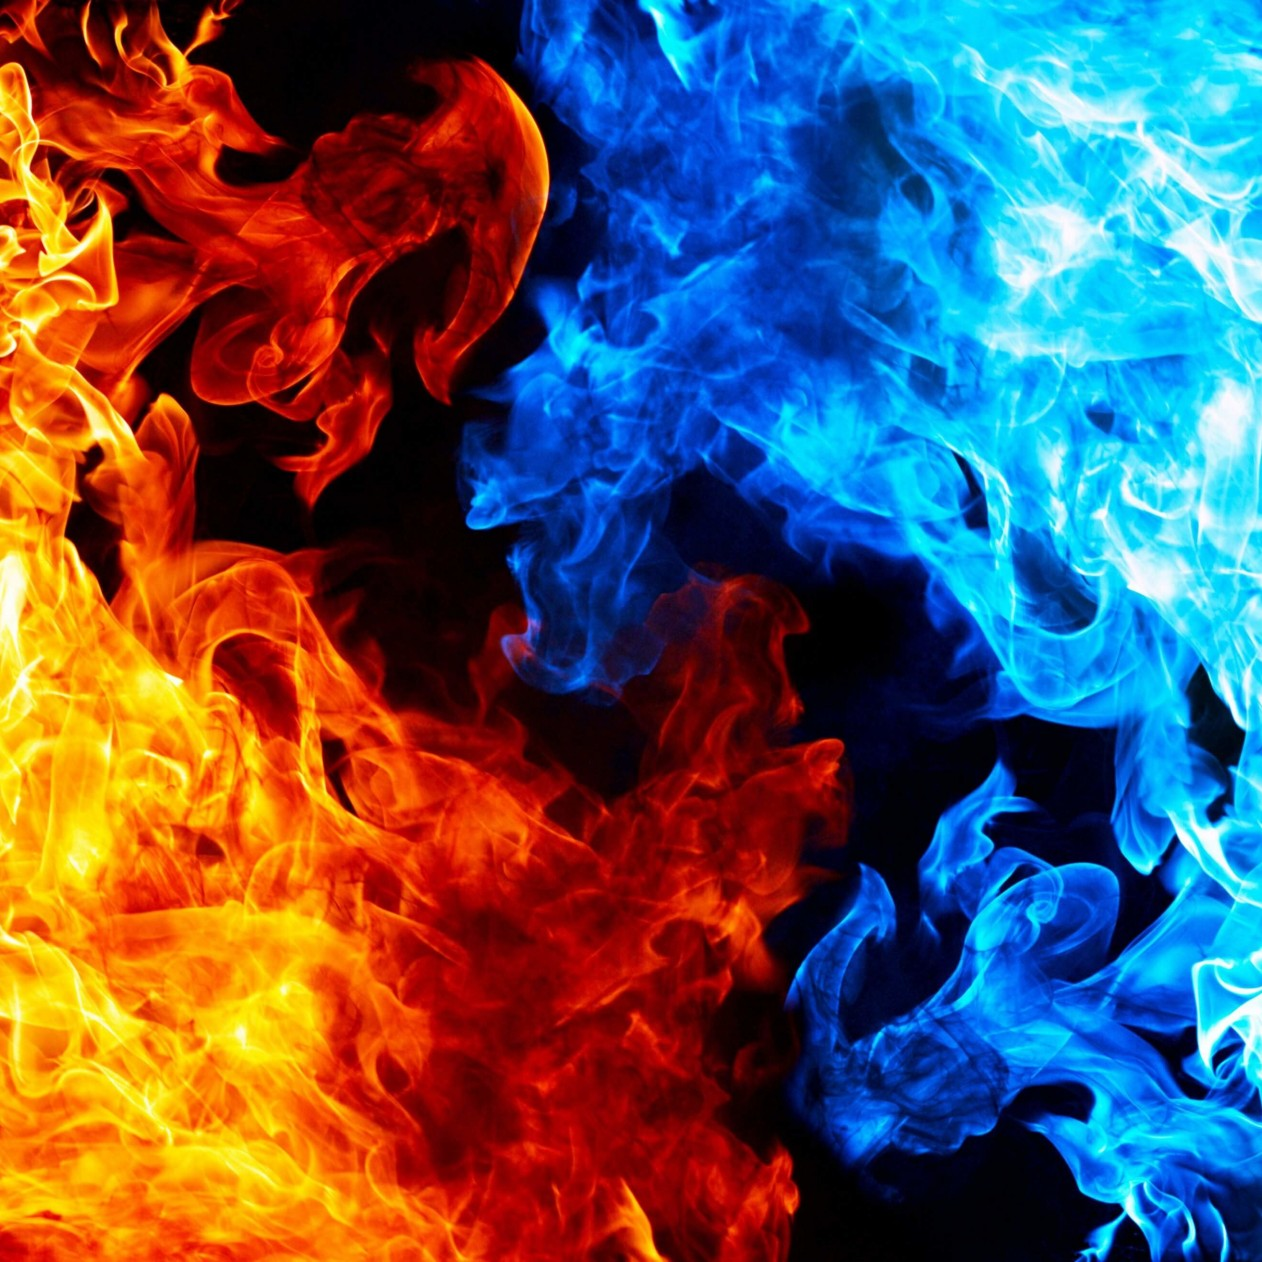 Blue And Red Fire Wallpaper for Apple iPad mini